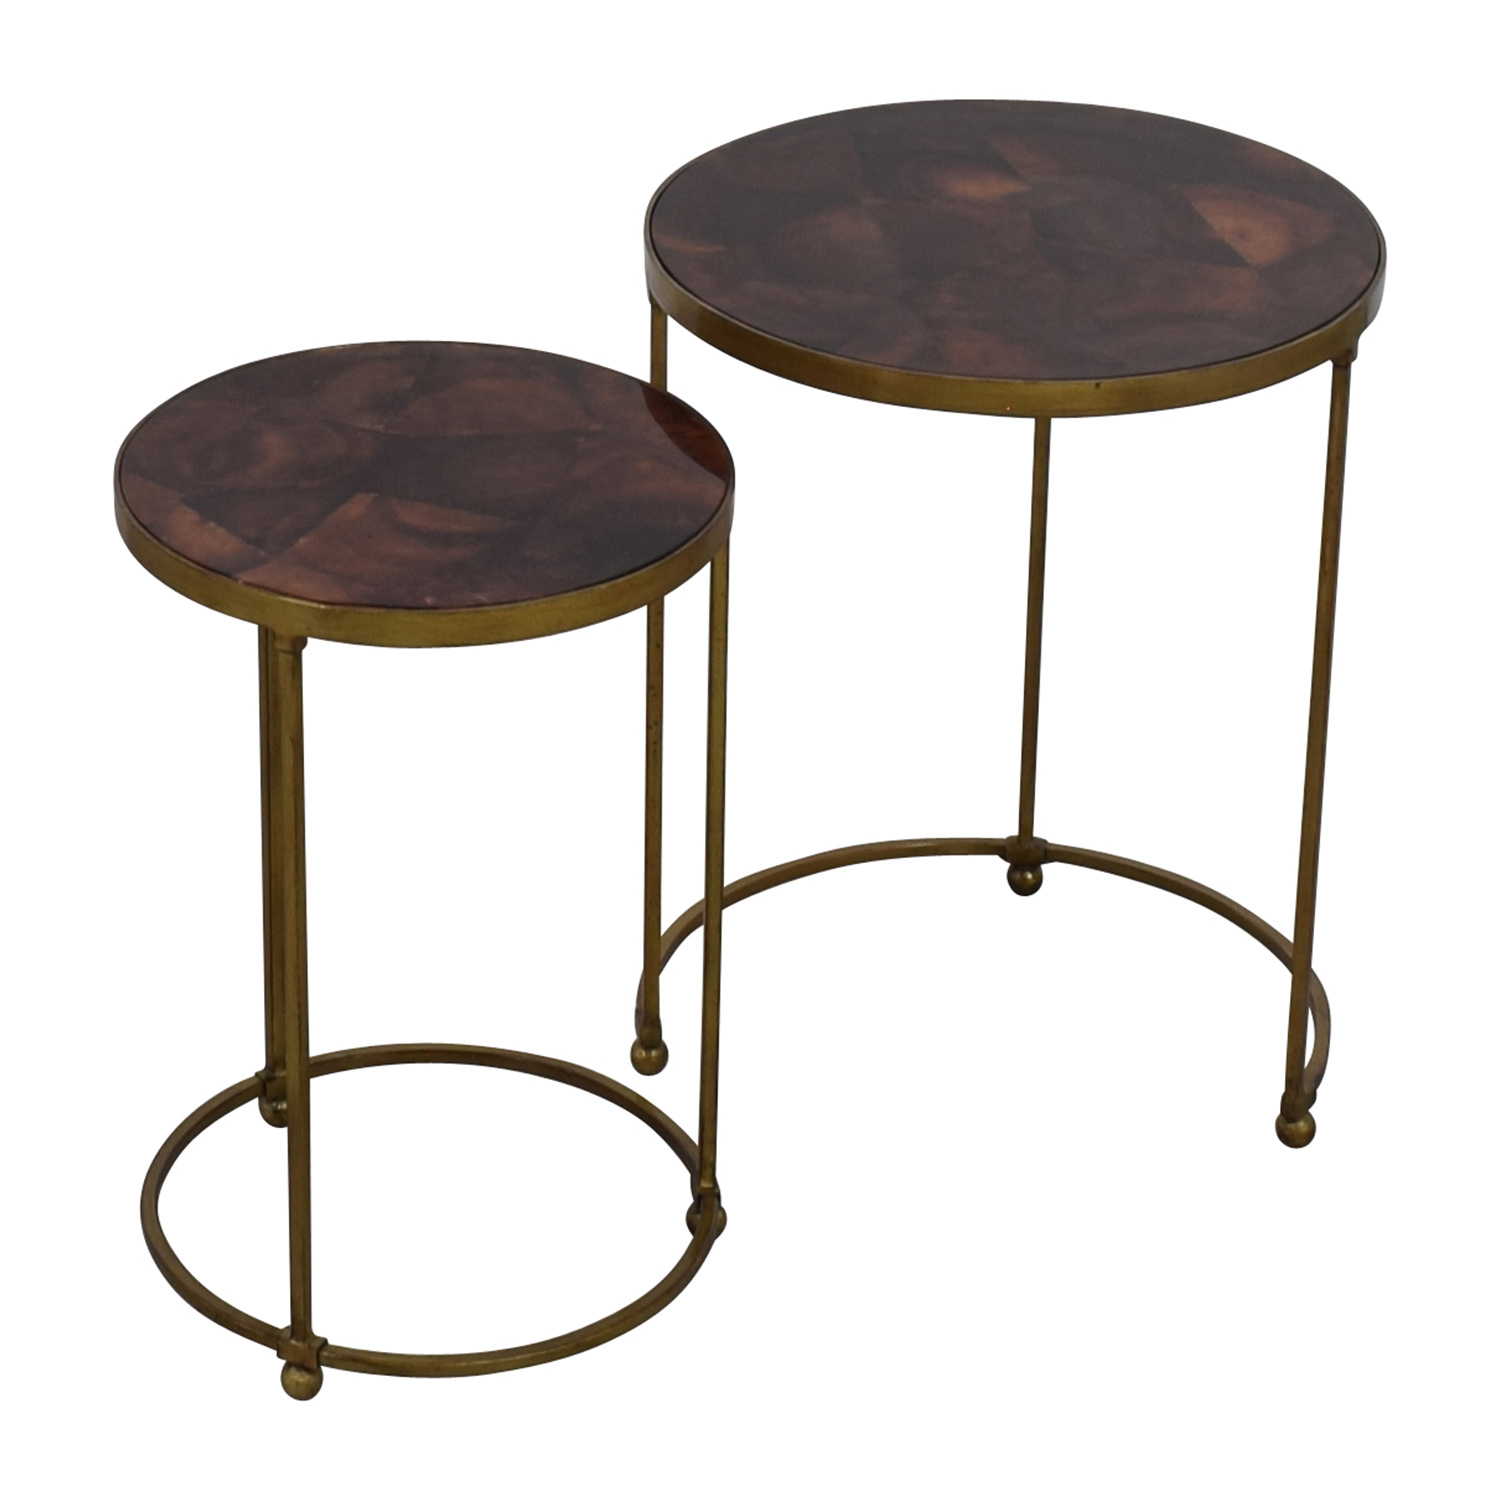 off carpet and home nesting round bronze brass accent tables used table the pier furniture rustic sliding door patio tray long cabinet nautical bedroom small coffee sets room